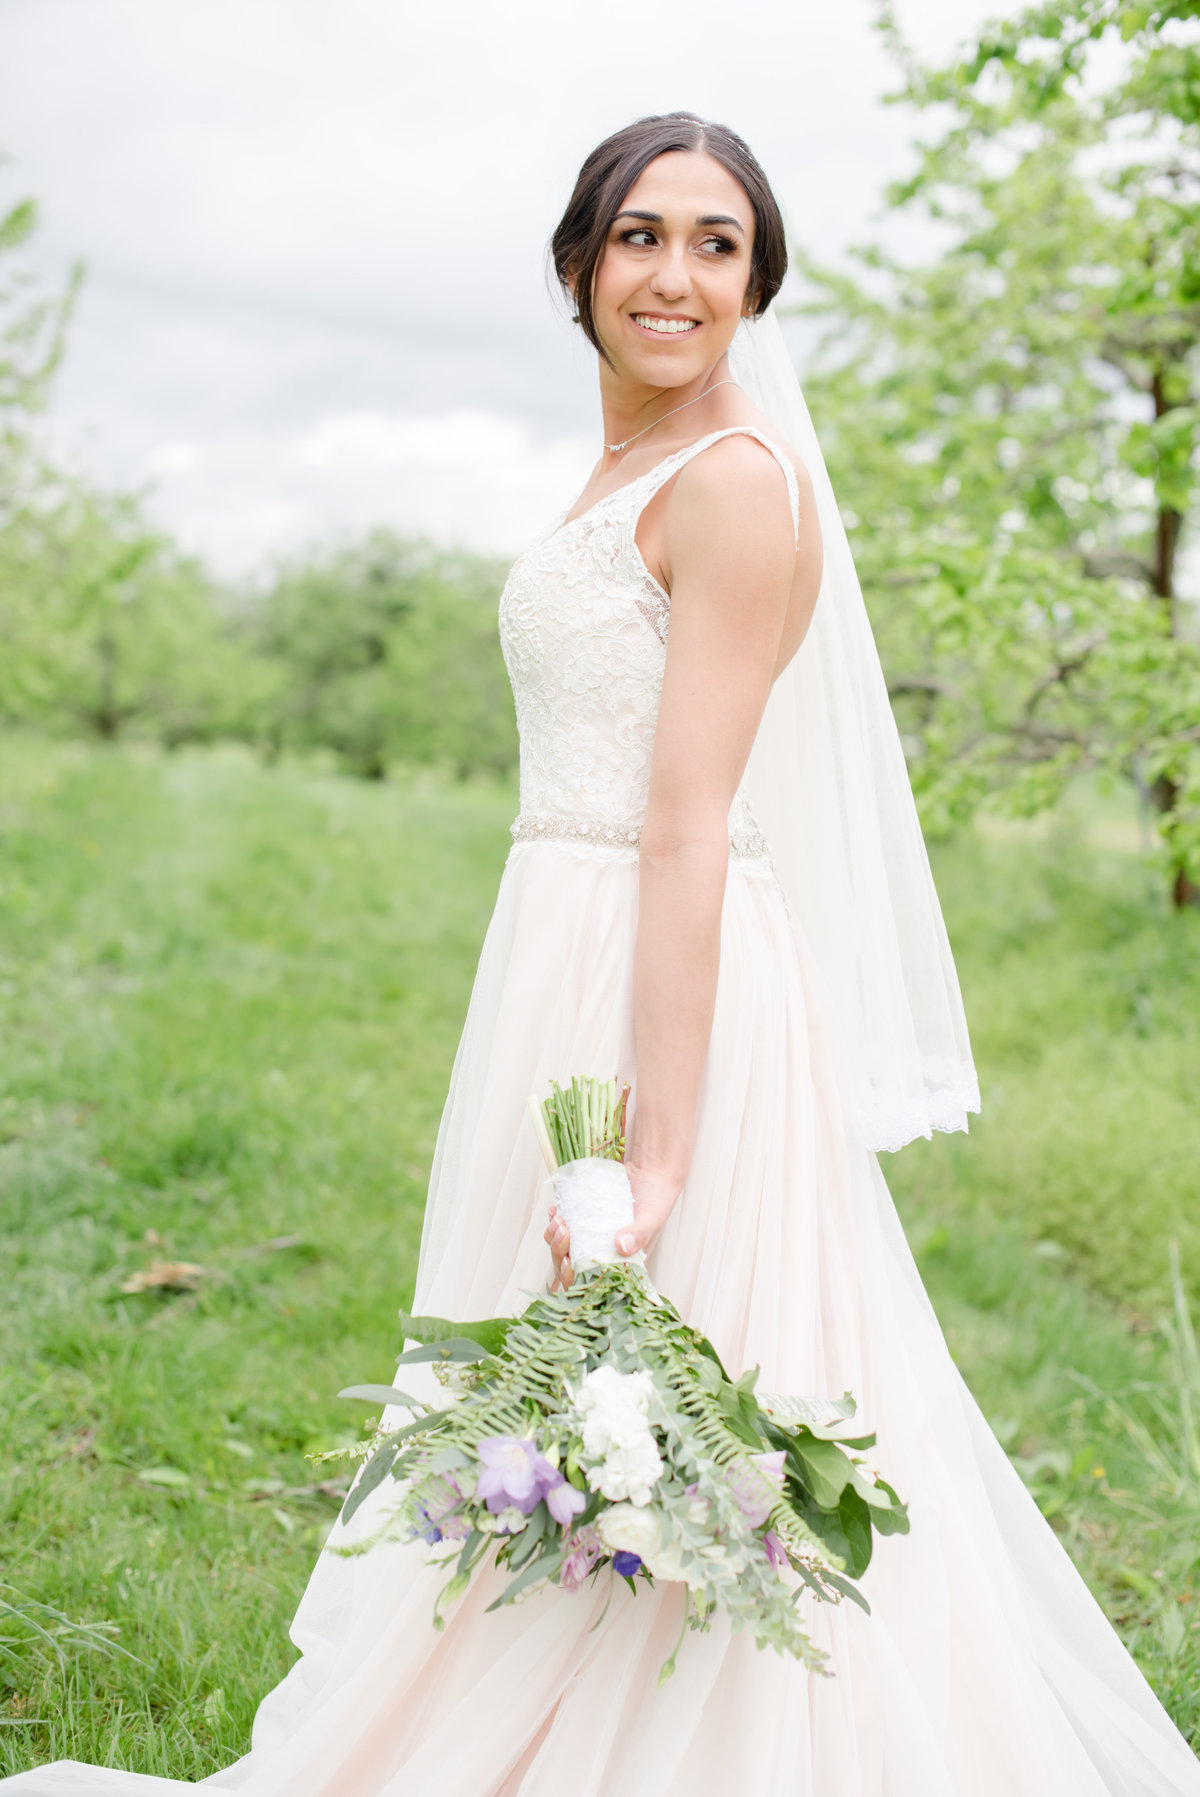 Rustic Barn Wedding Pennsylvania-Rodale Institute Wedding Raquel and Daniel Wedding 23088-44